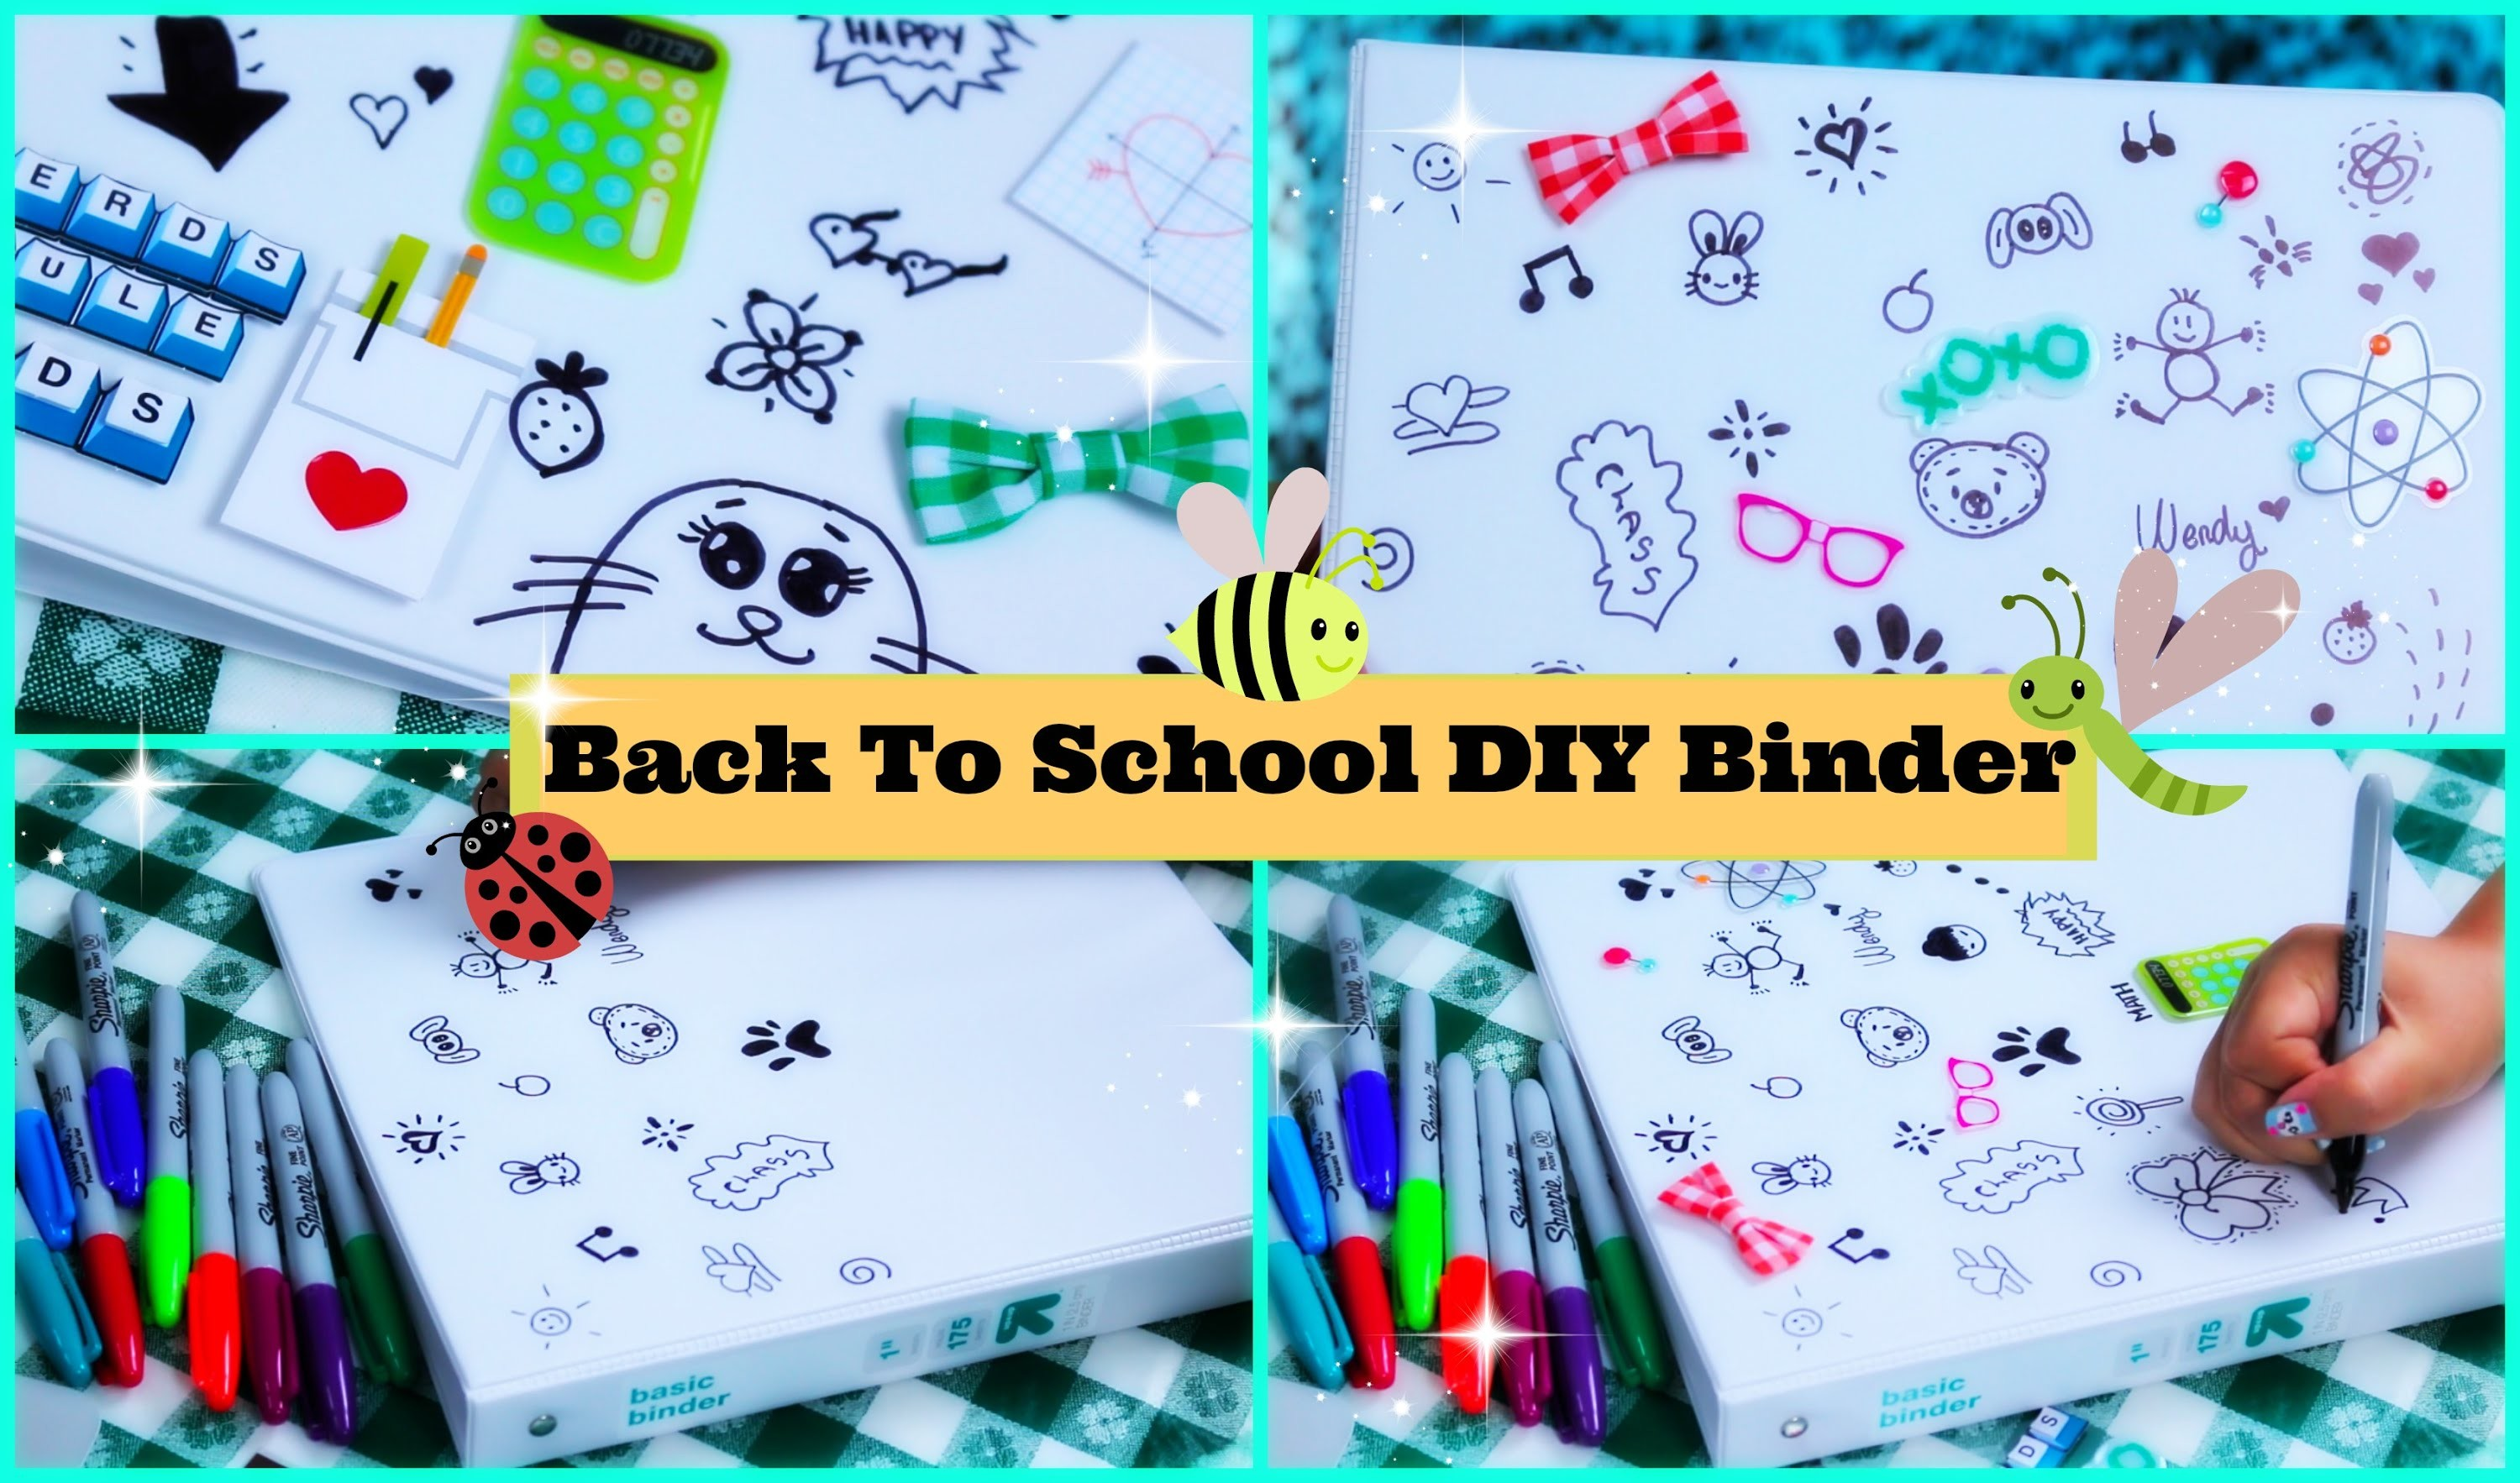 How To Make an Easy Back To School Binder. Folder - School Supplies DIY